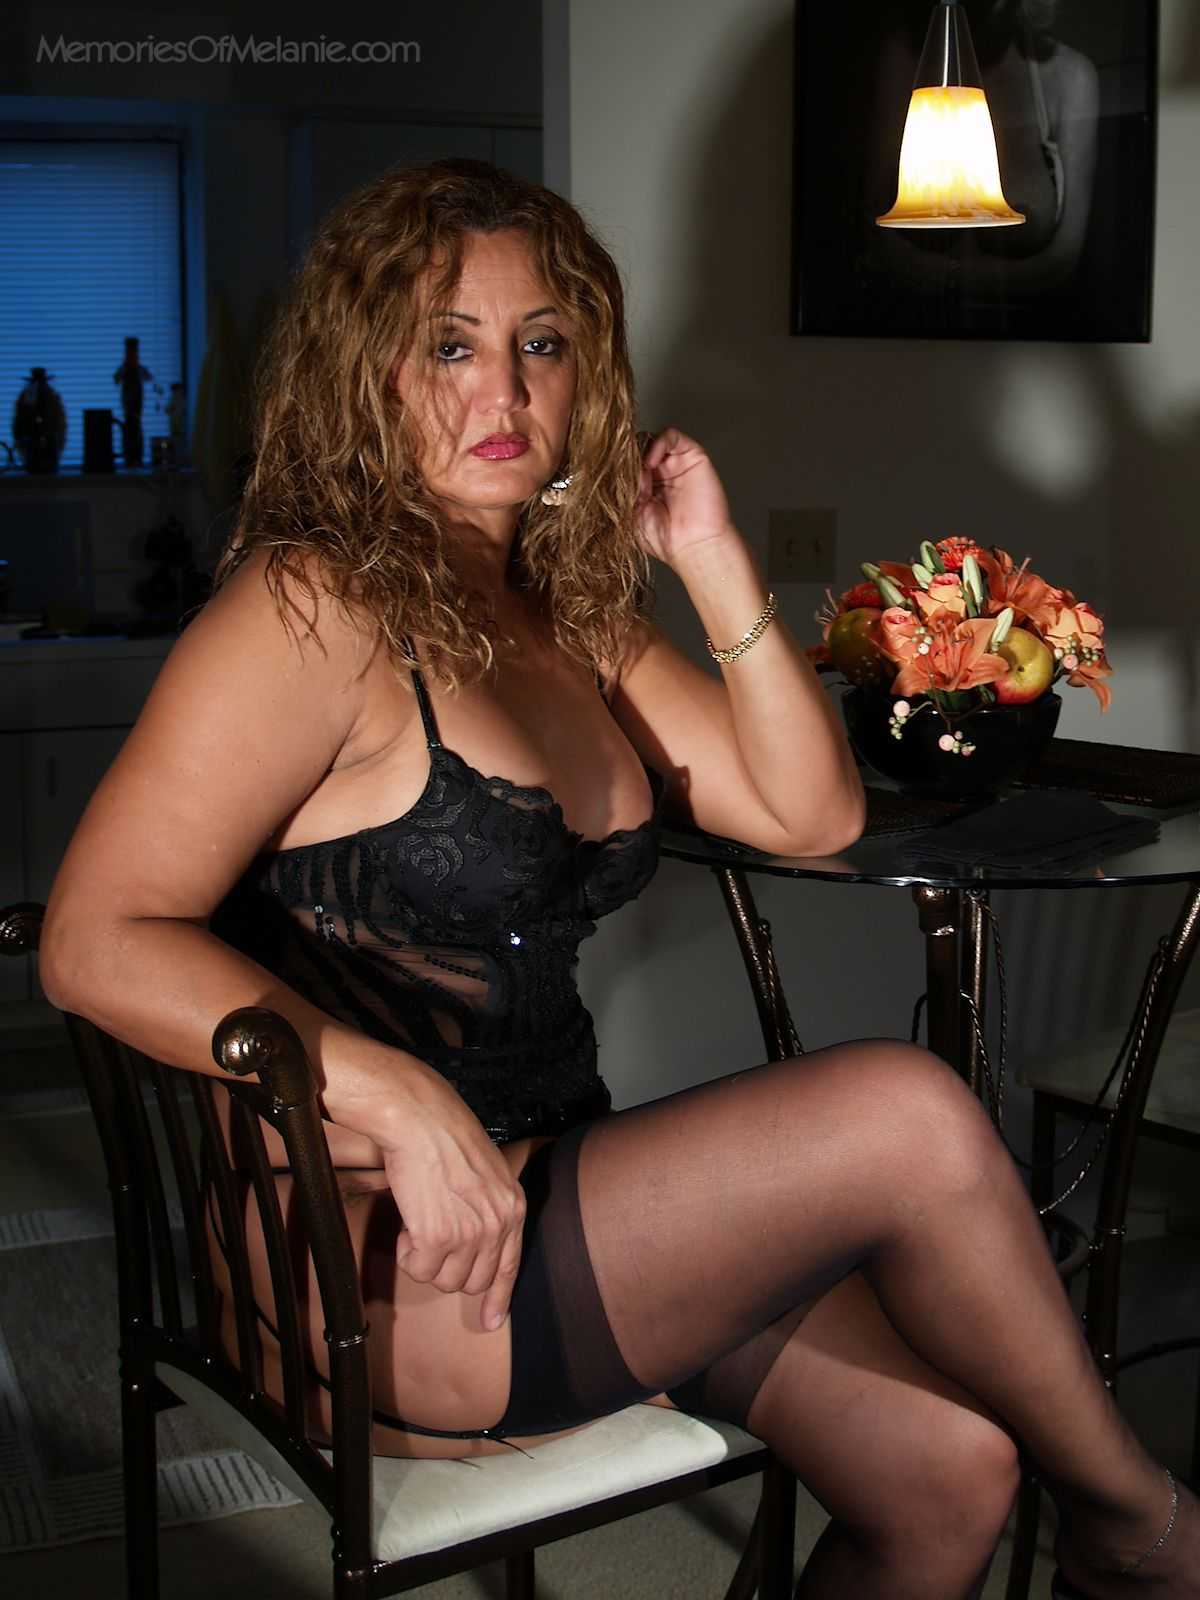 Glamour milf stockings